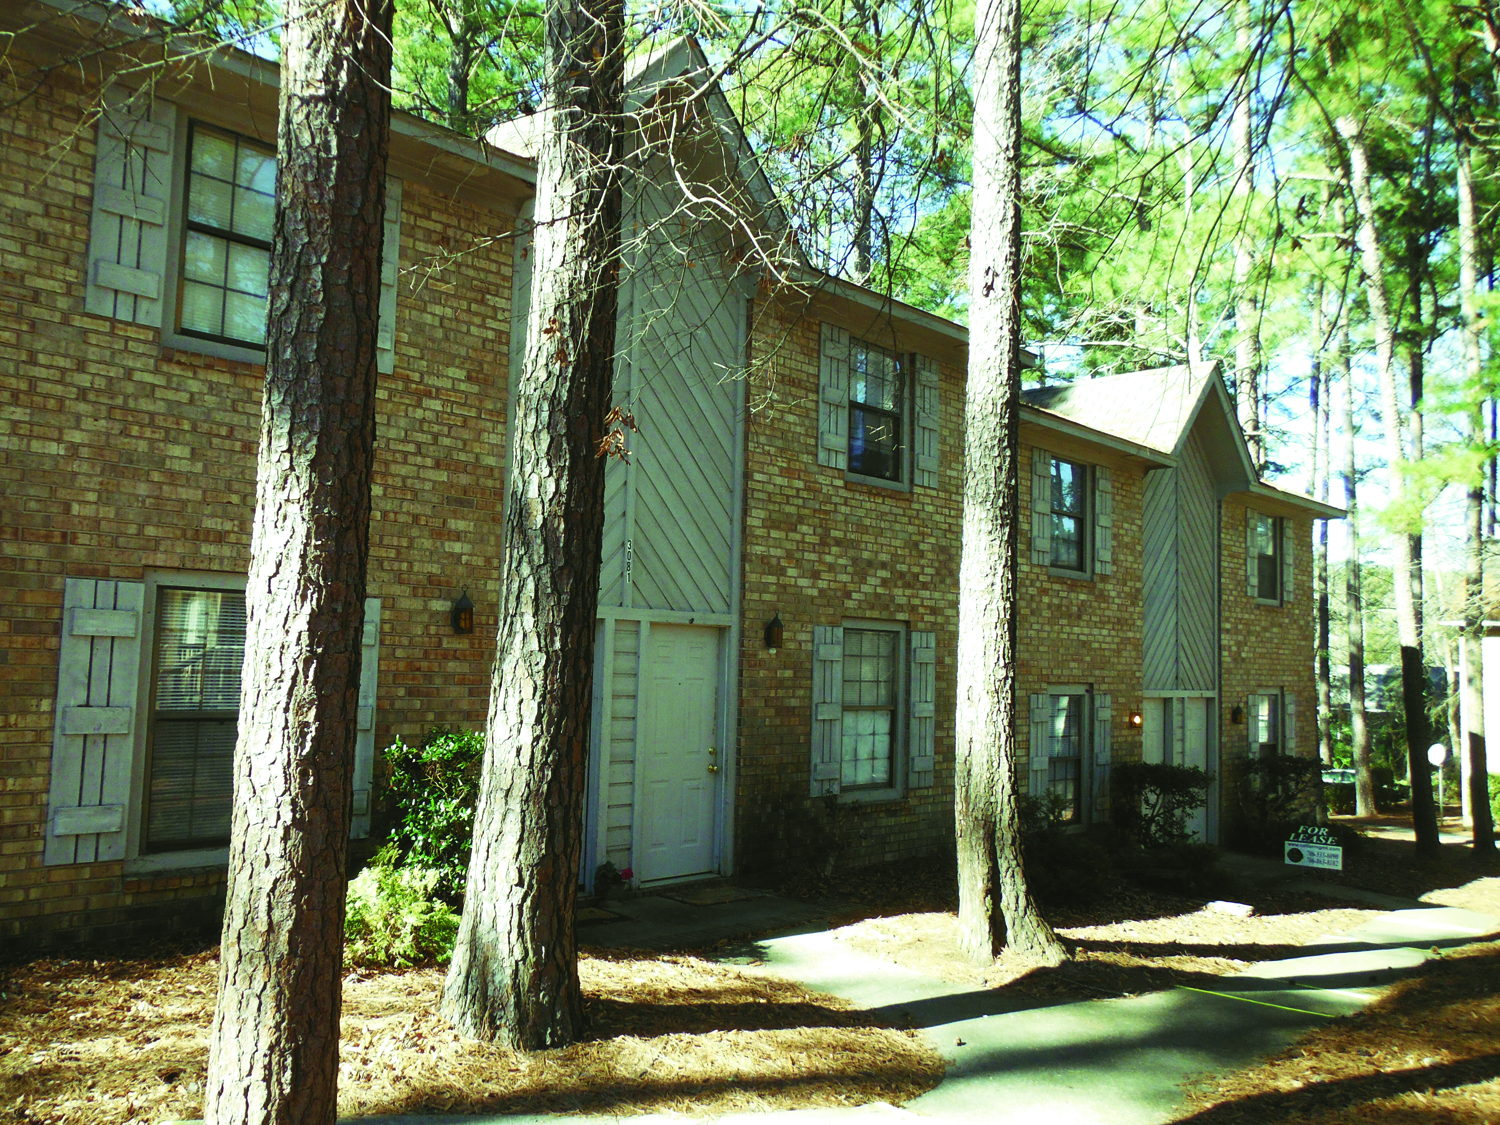 Wintergreen Town Homes outside building view in Augusta, GA